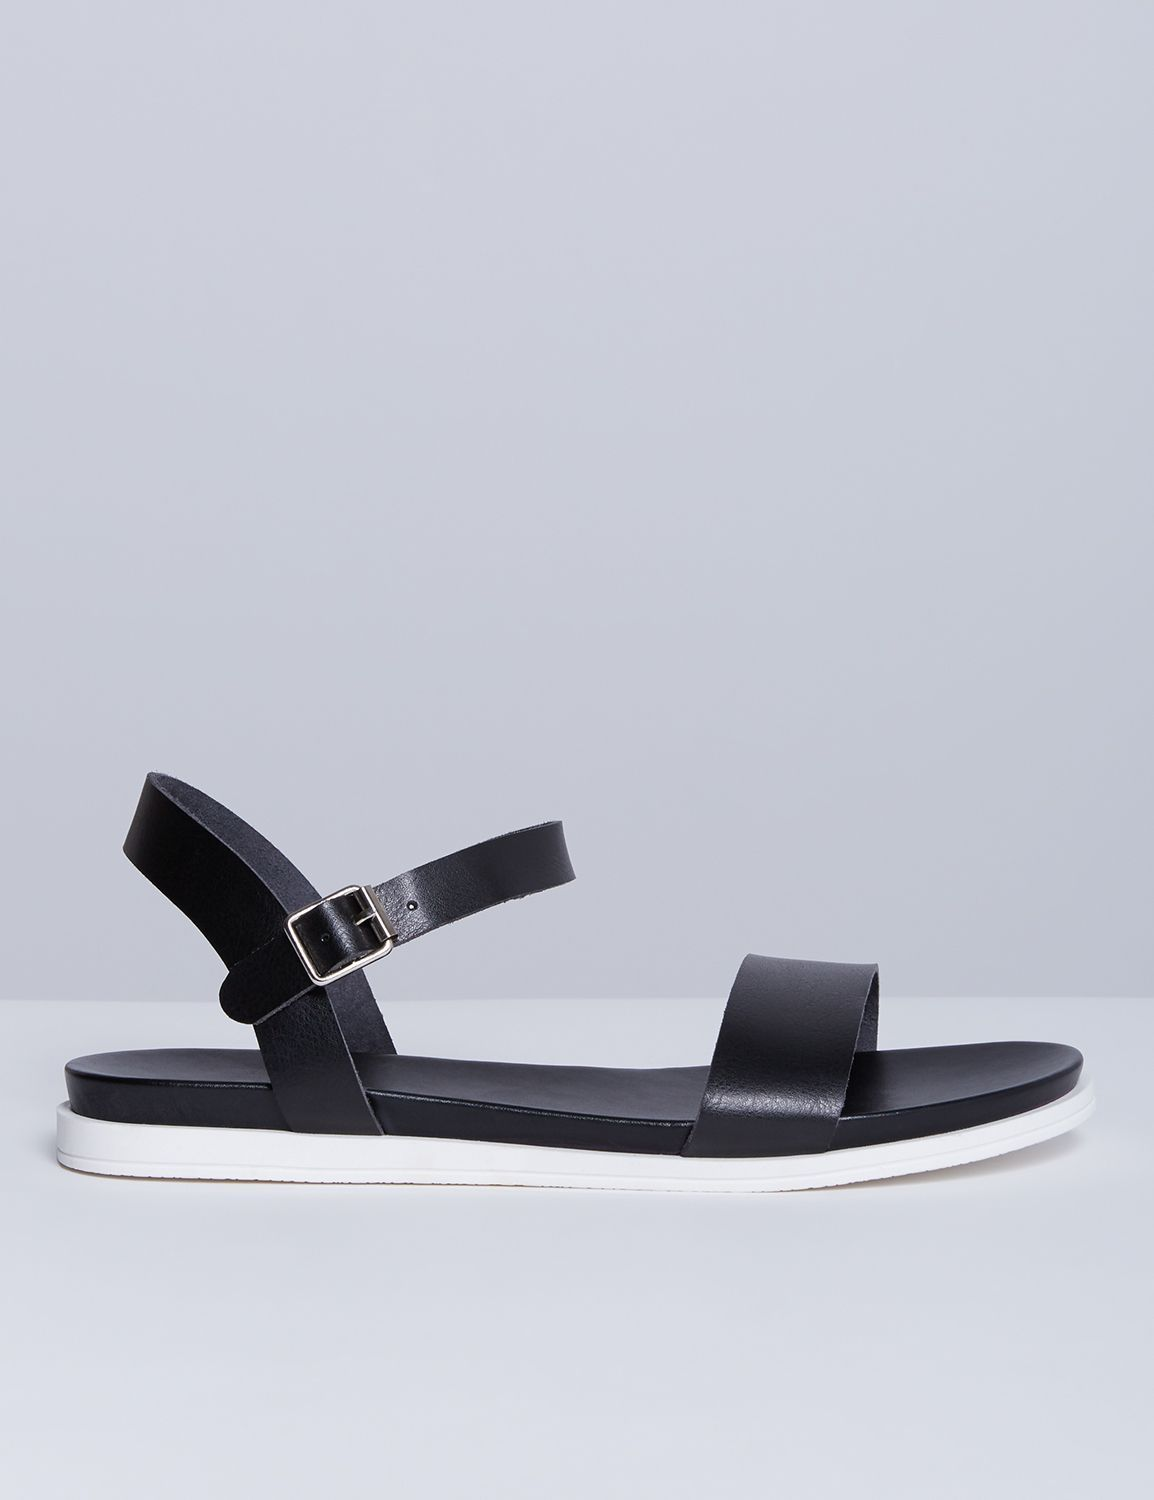 a1eea91246b6 2-Strap Sandal with White Sole